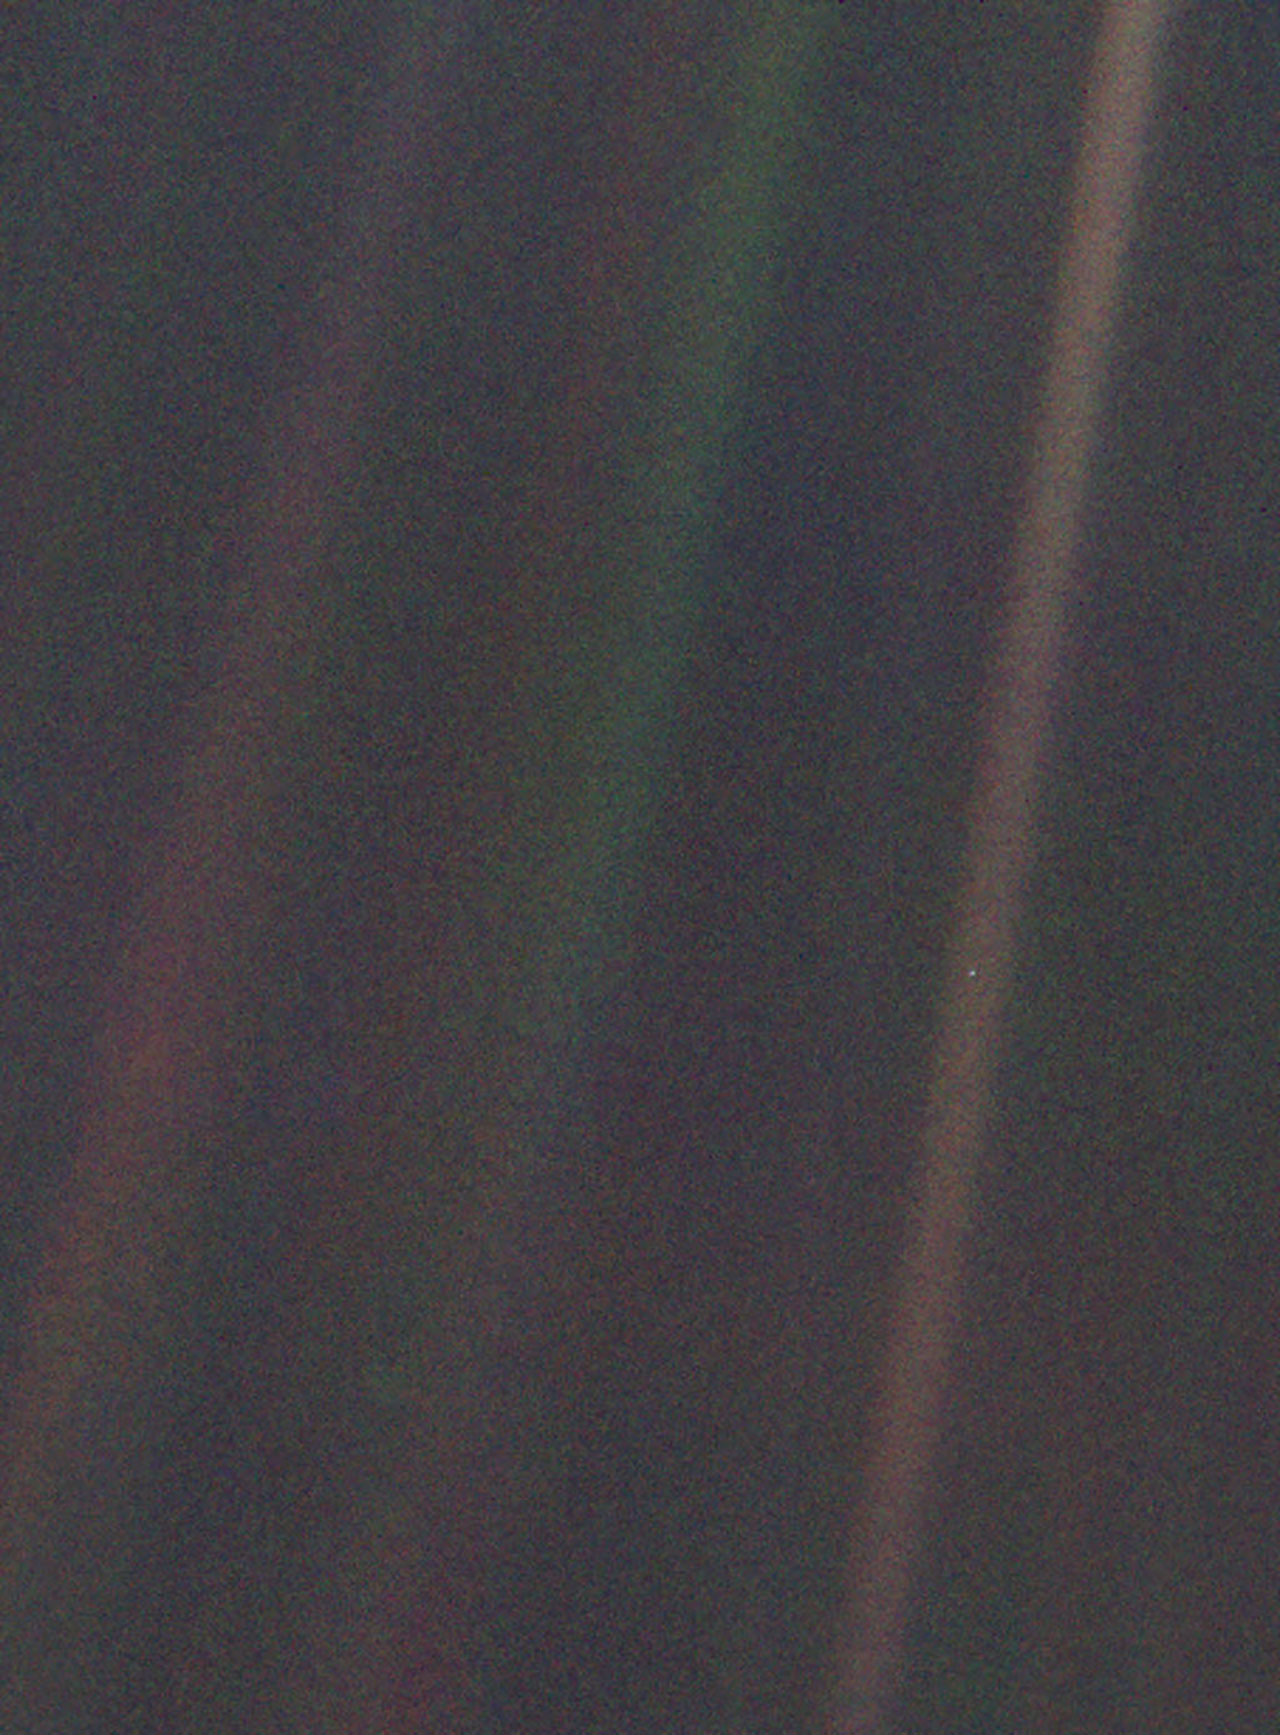 Pale blue dot Earth image for photos of Earth from various points in space